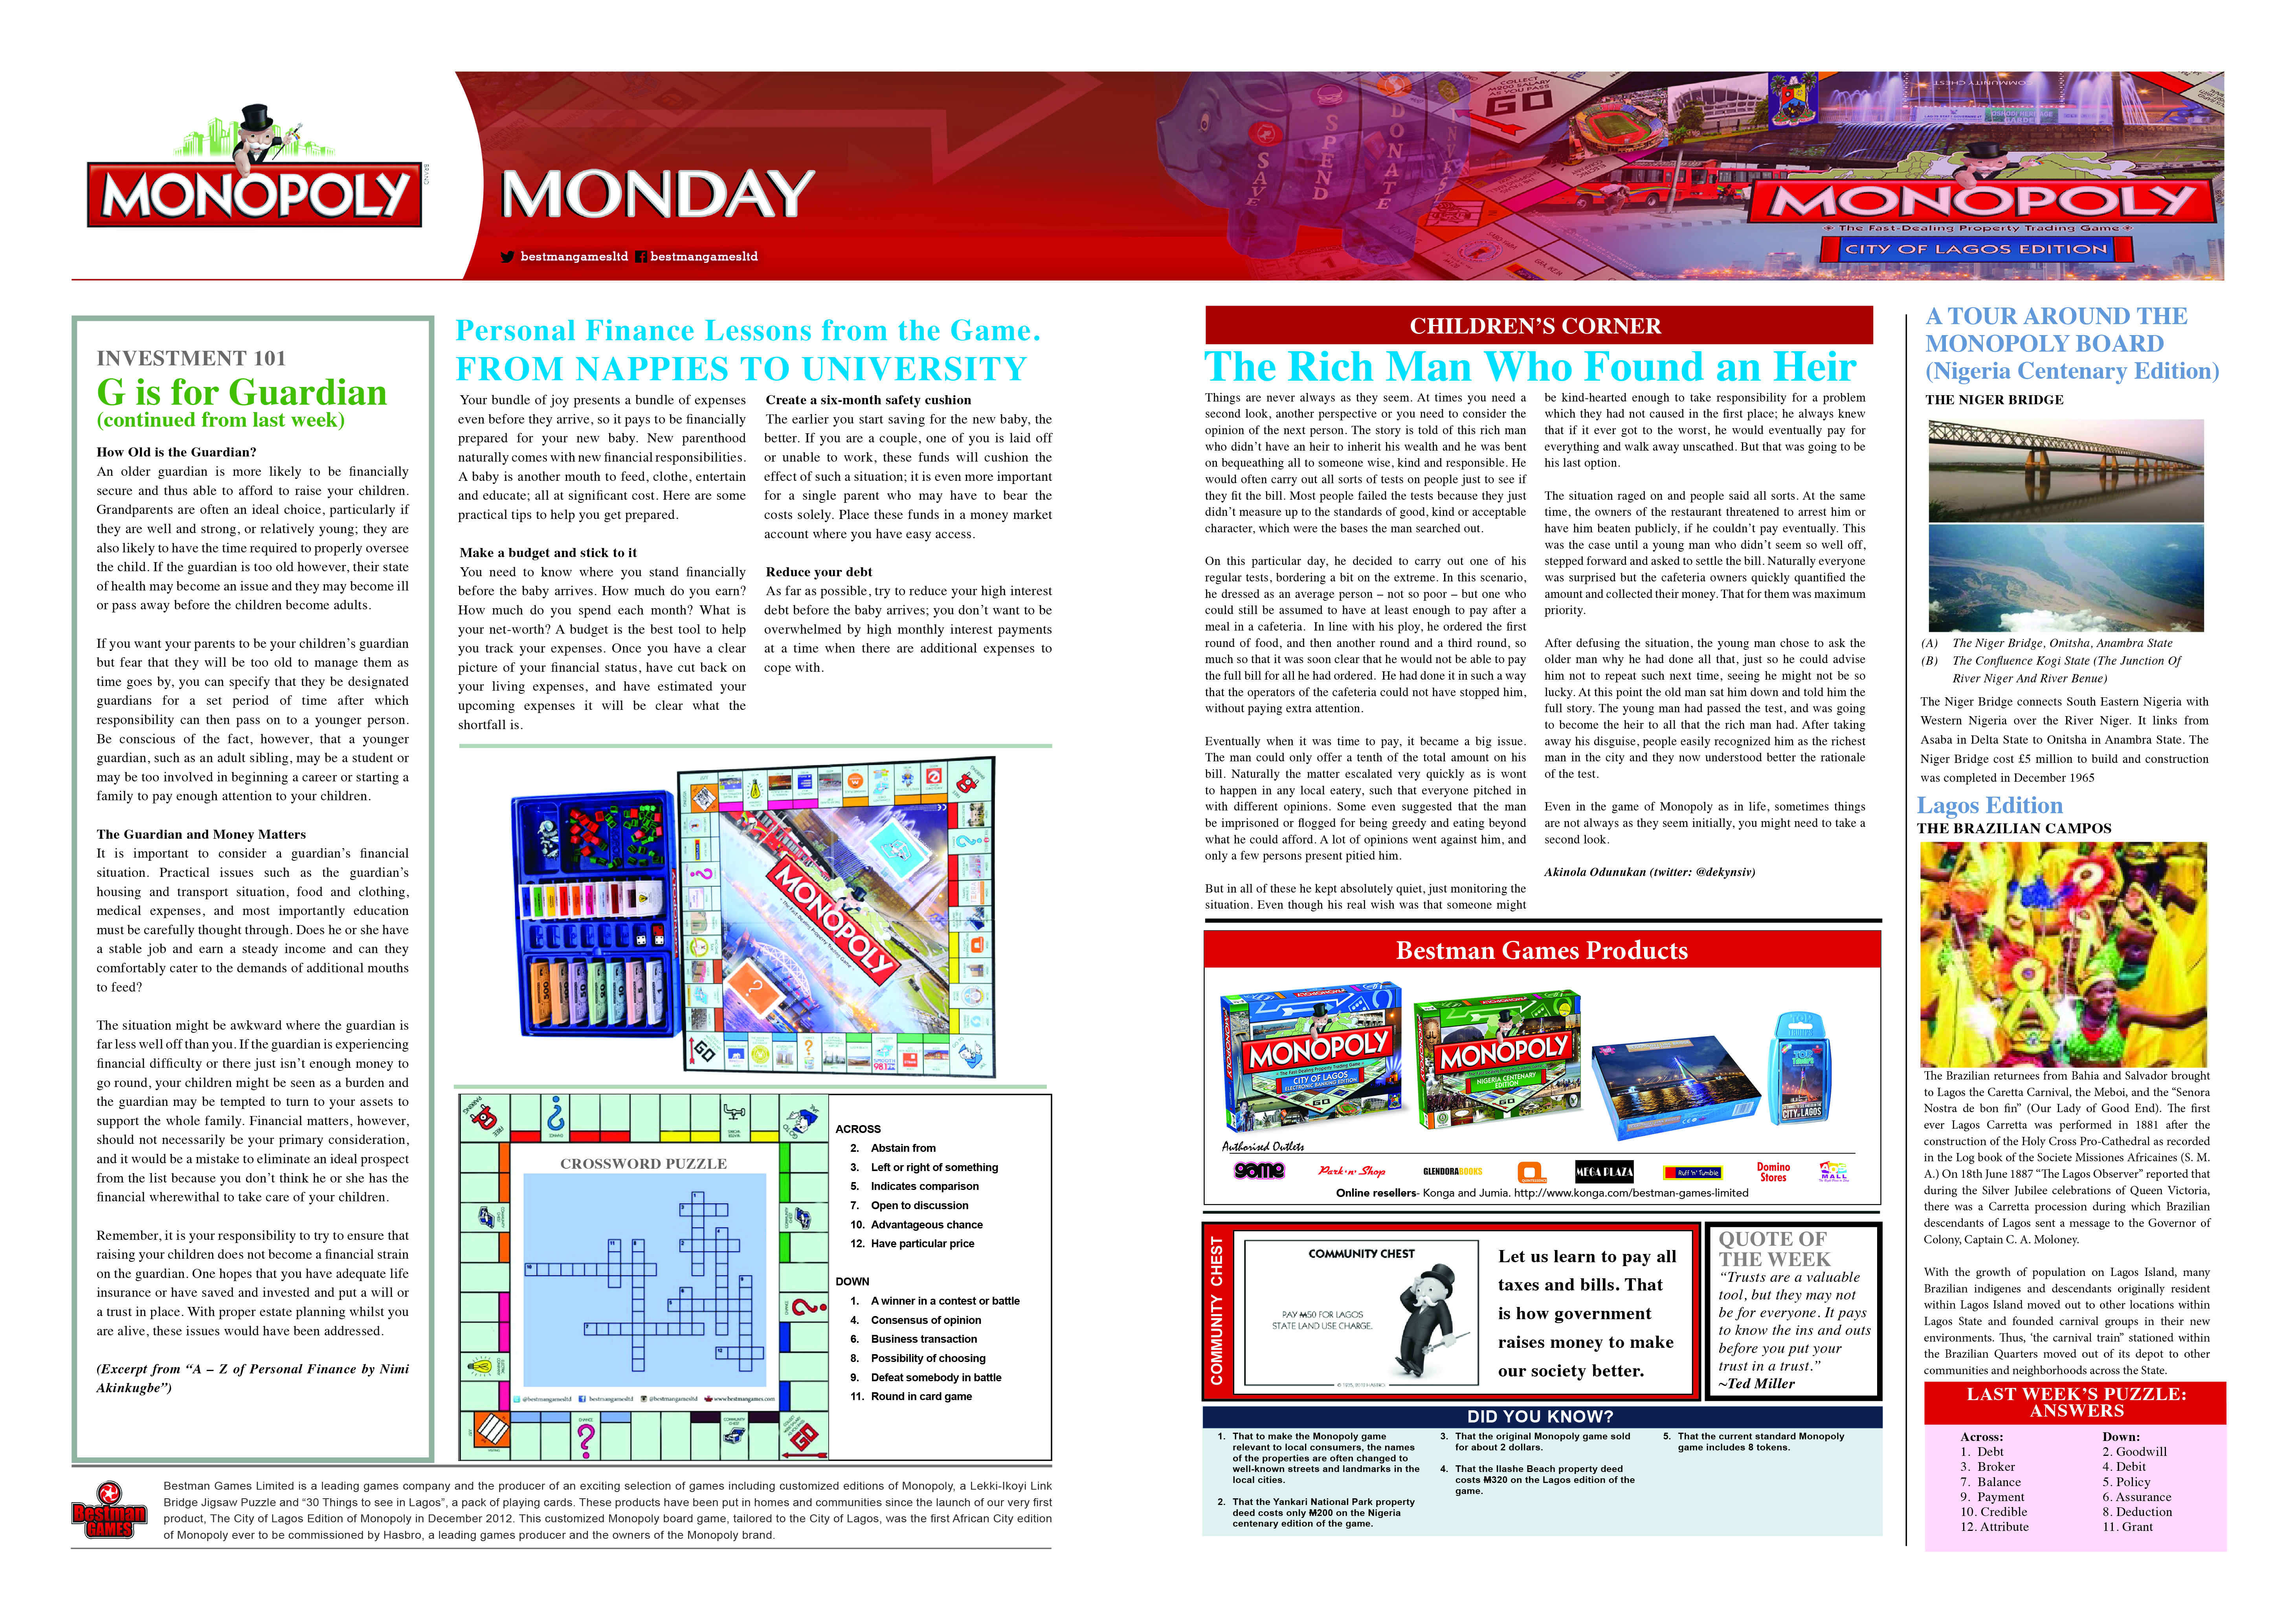 Monopoly Monday - Week 19 - 23rd May 2016